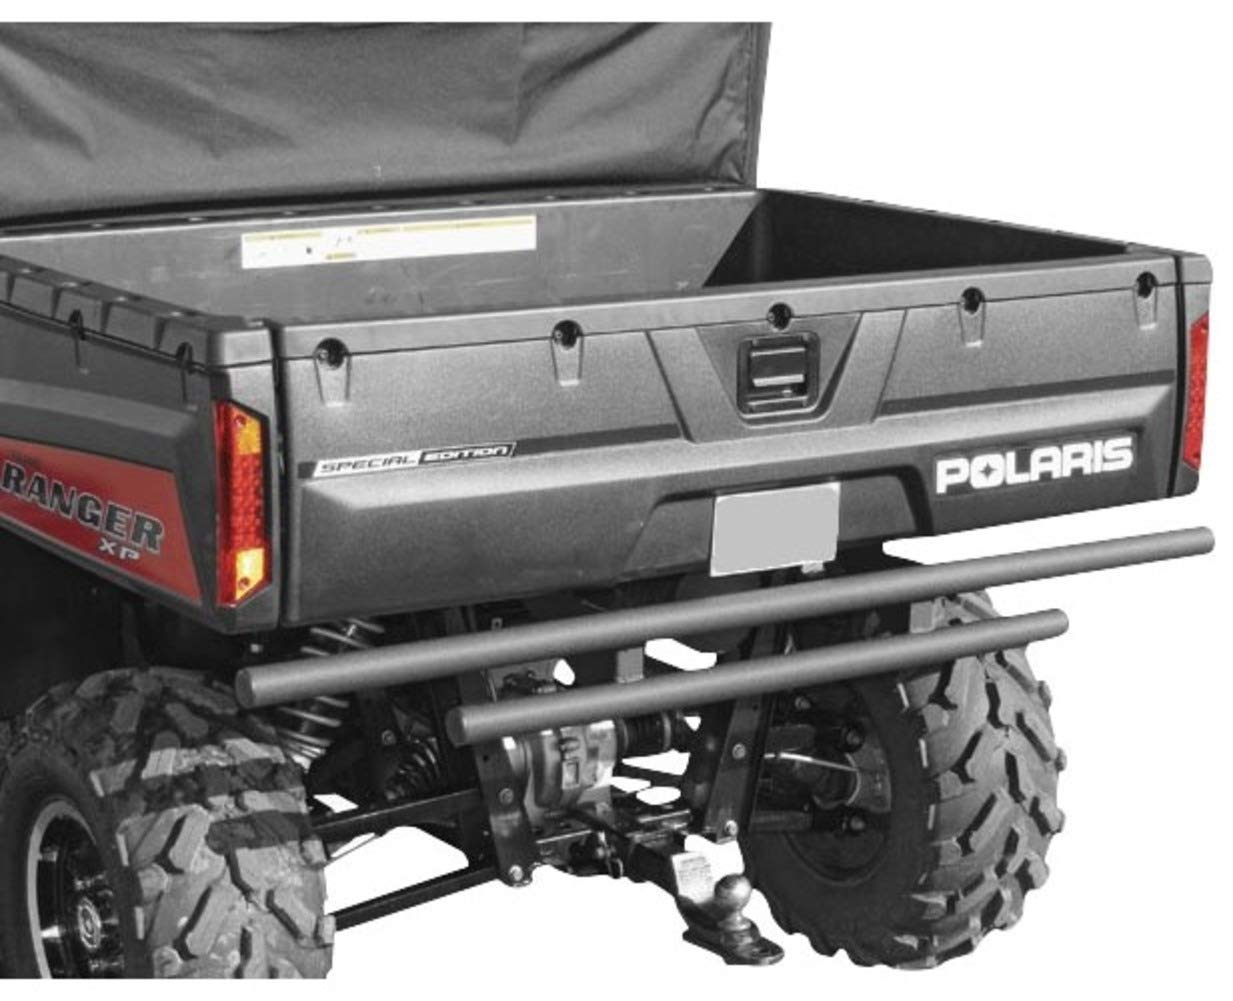 2005-2013 Polaris Full Size Ranger and BobCat Rear Double Tube KFI Bumper KFI Products